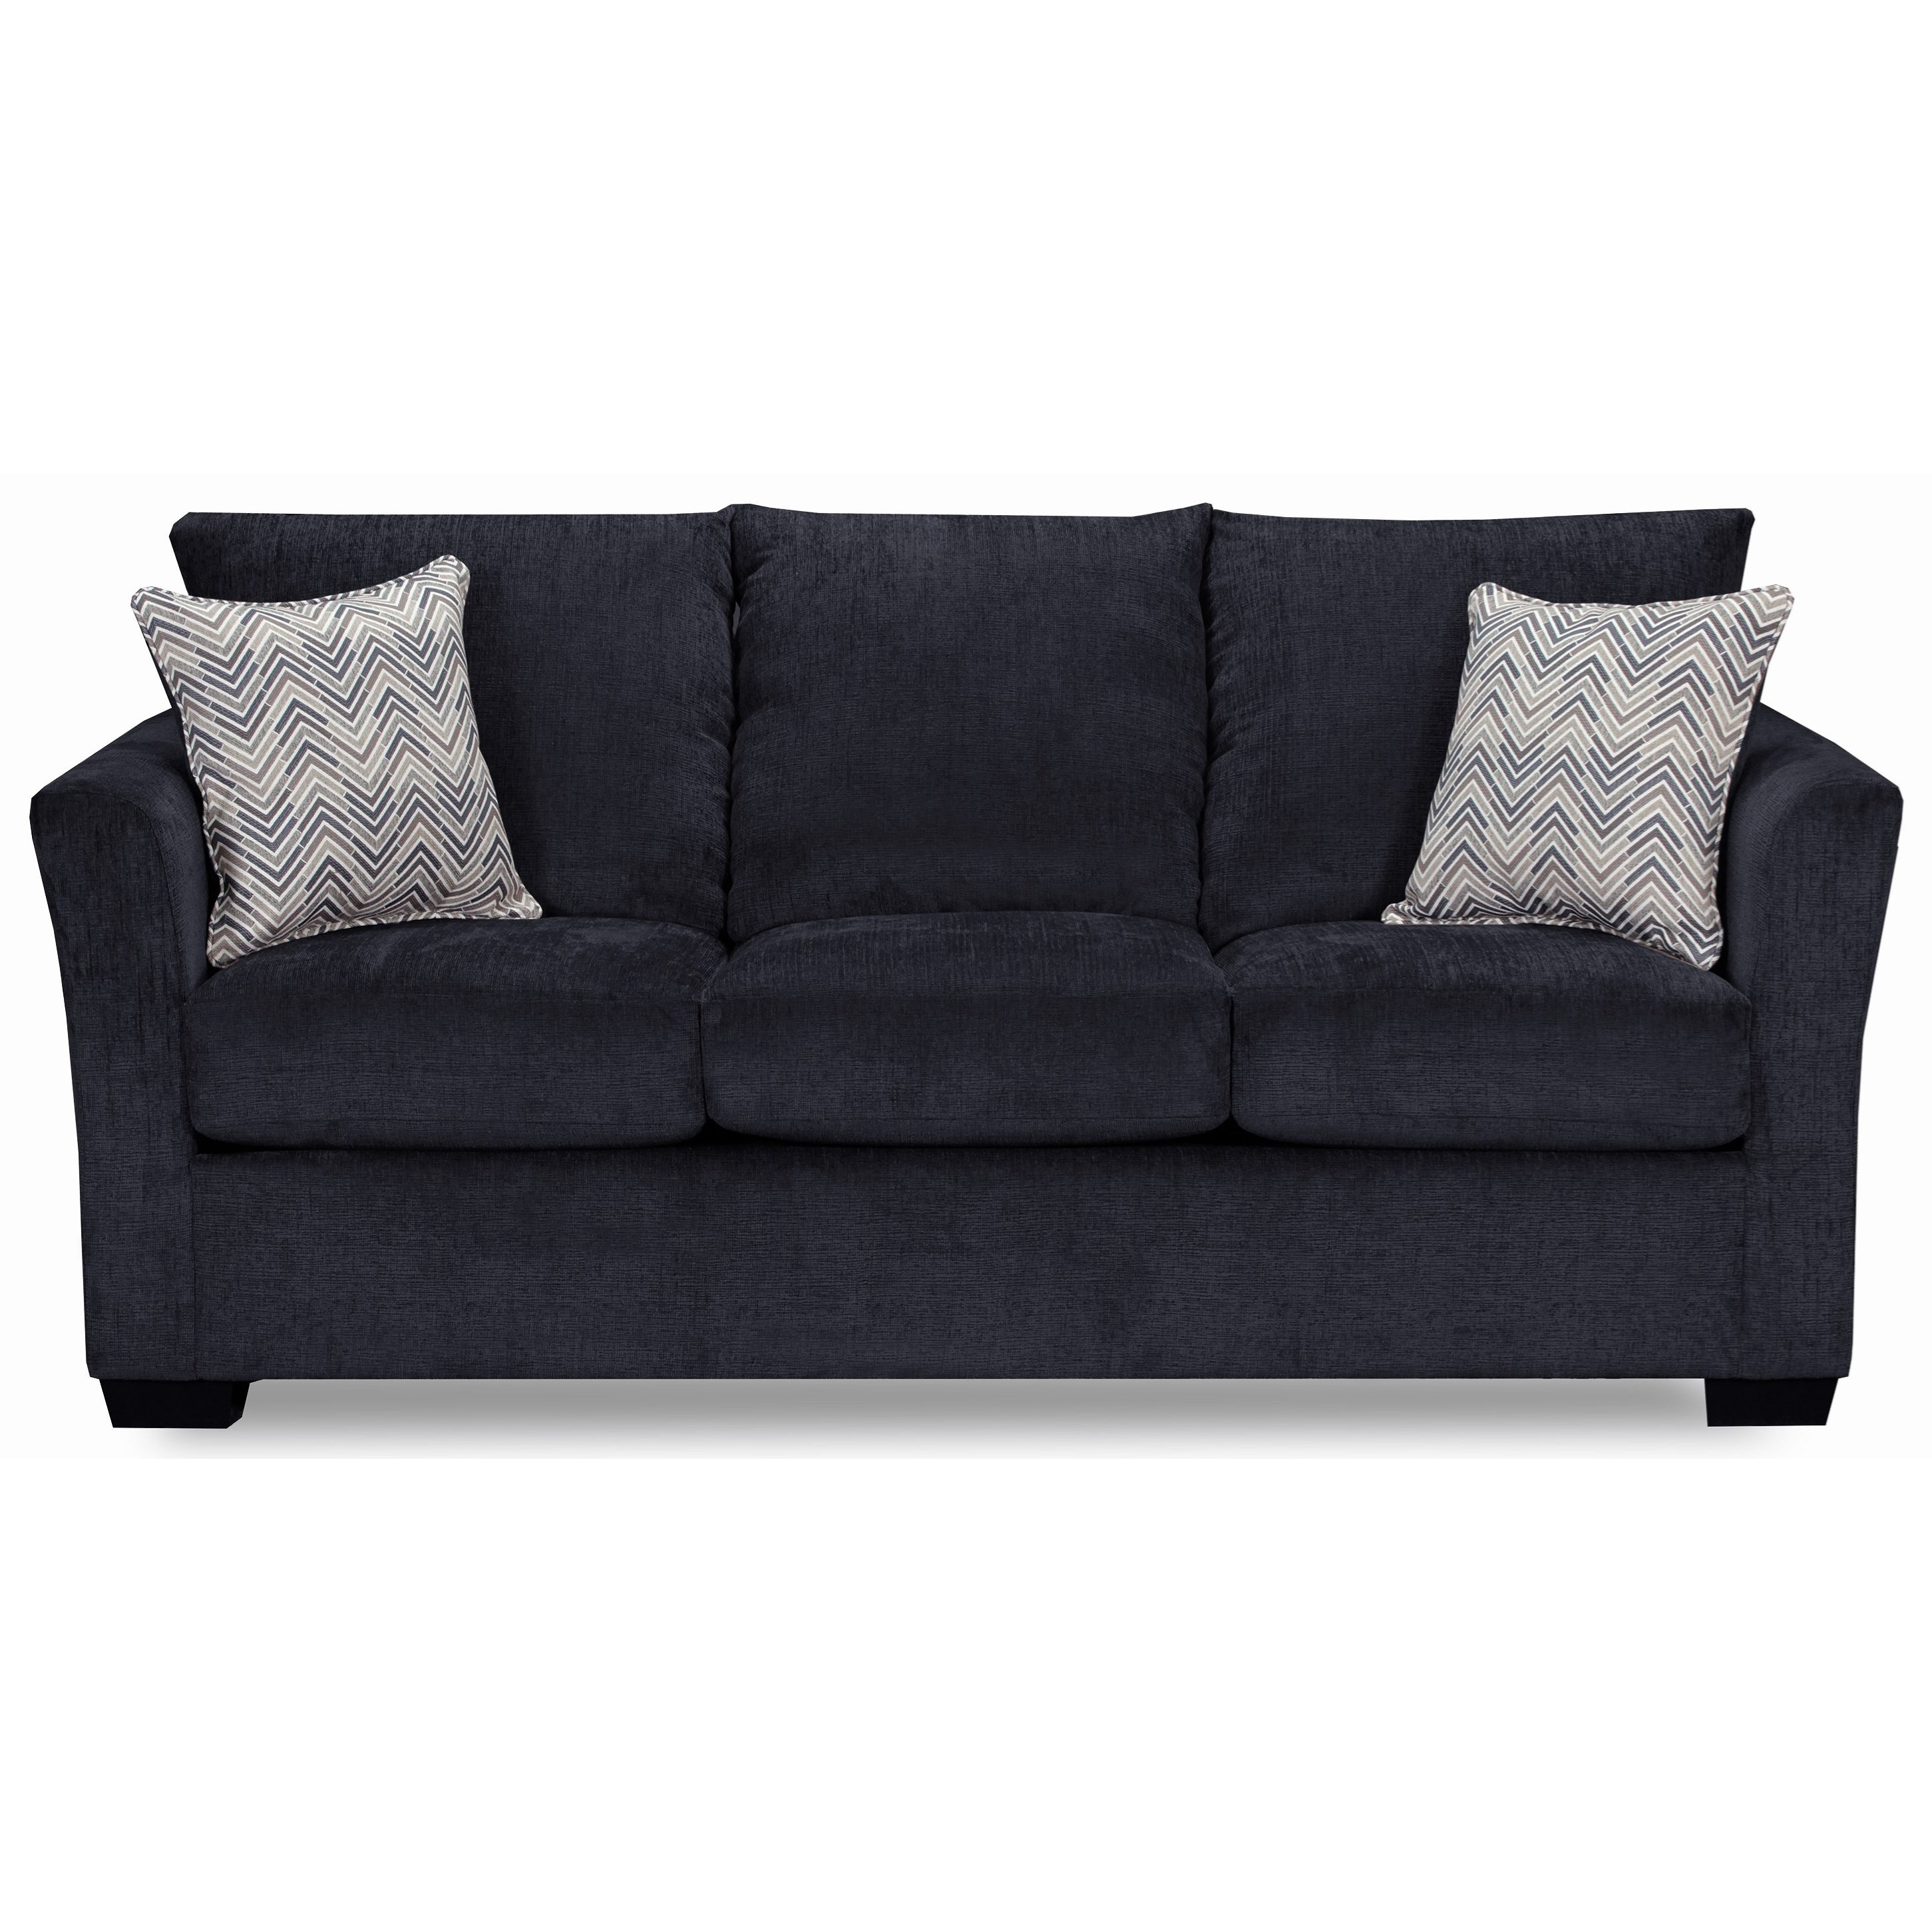 4206 Transitional Queen Sleeper Sofa by Lane at Story & Lee Furniture